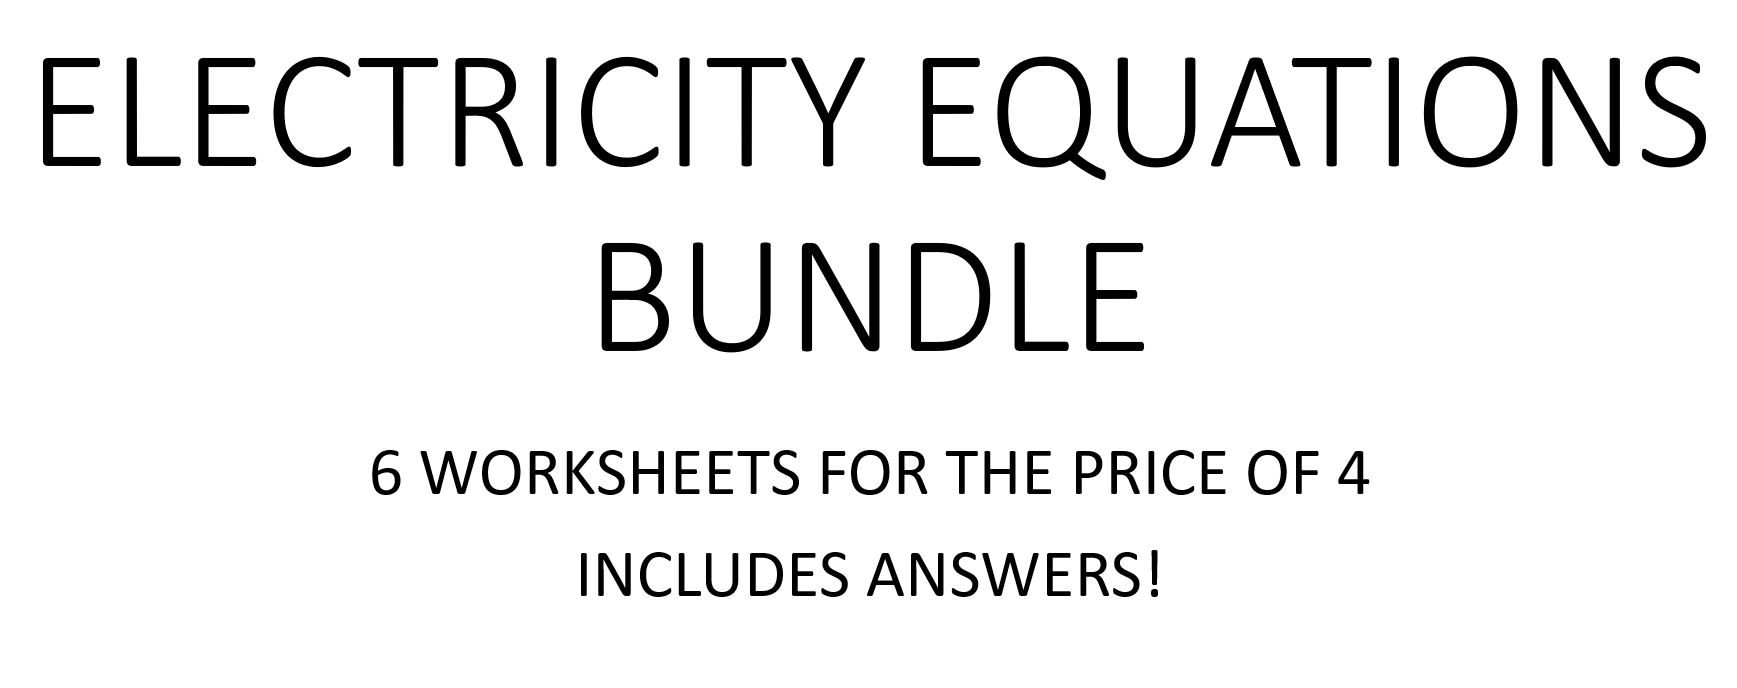 Electricity Equations Bundle